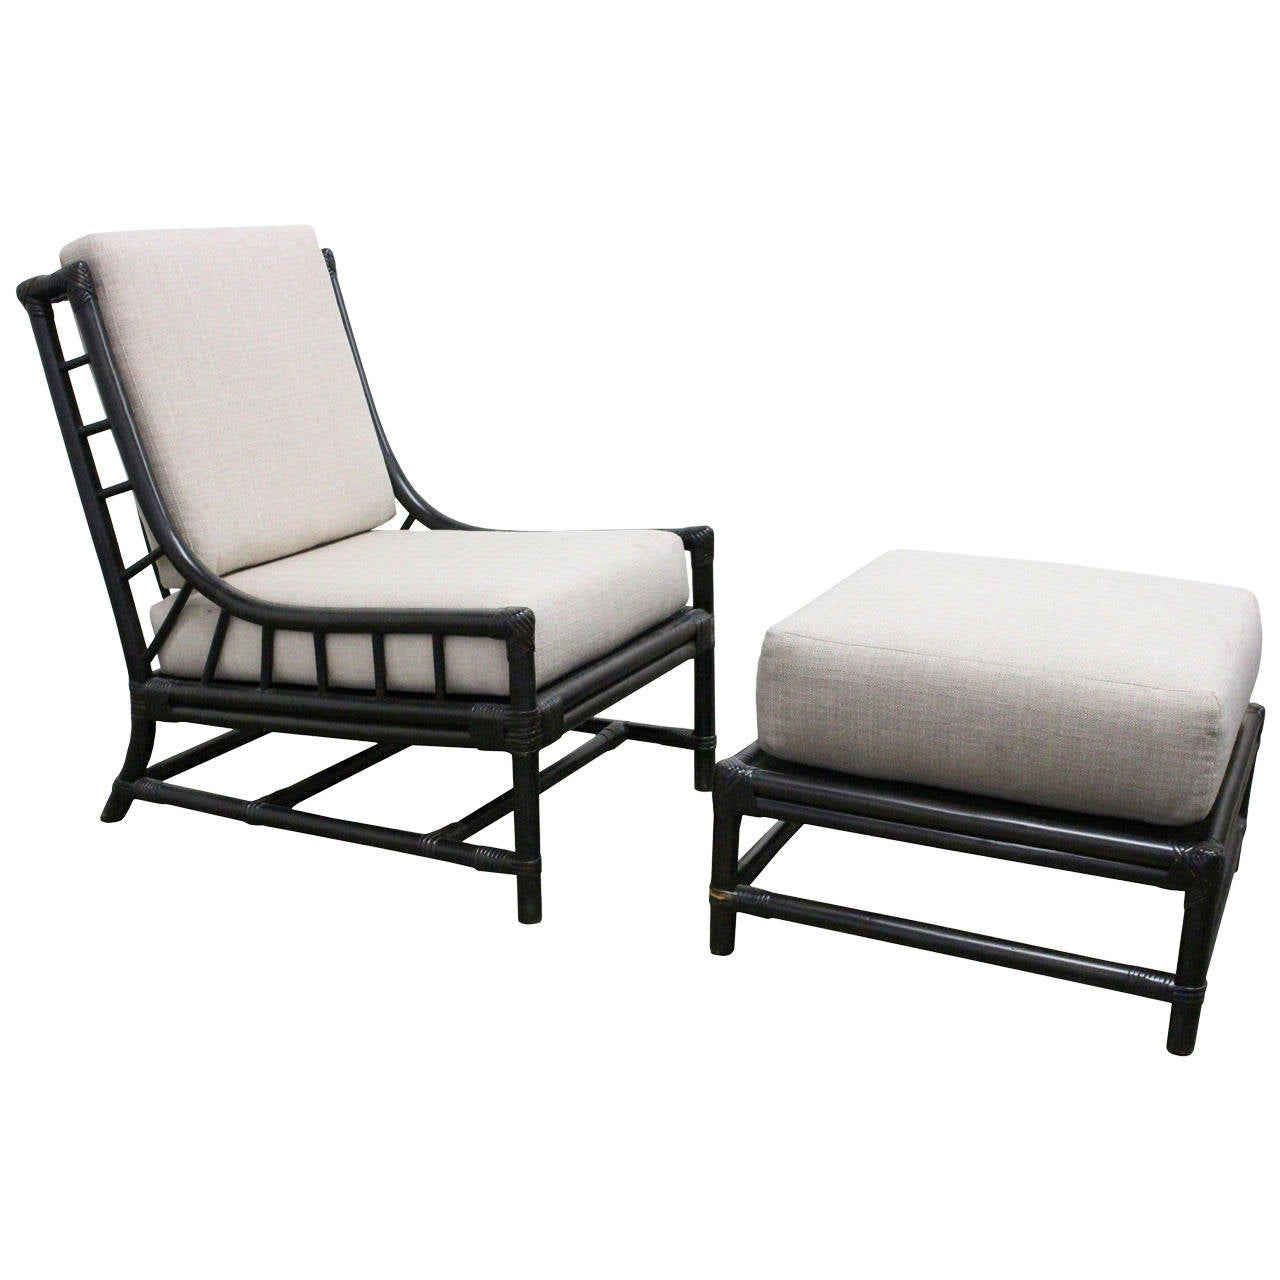 Lounge Chair and Ottoman by Tommi Parzinger for Willow u0026 Reed 1  sc 1 st  1stDibs : chaise lounge with ottoman - Sectionals, Sofas & Couches